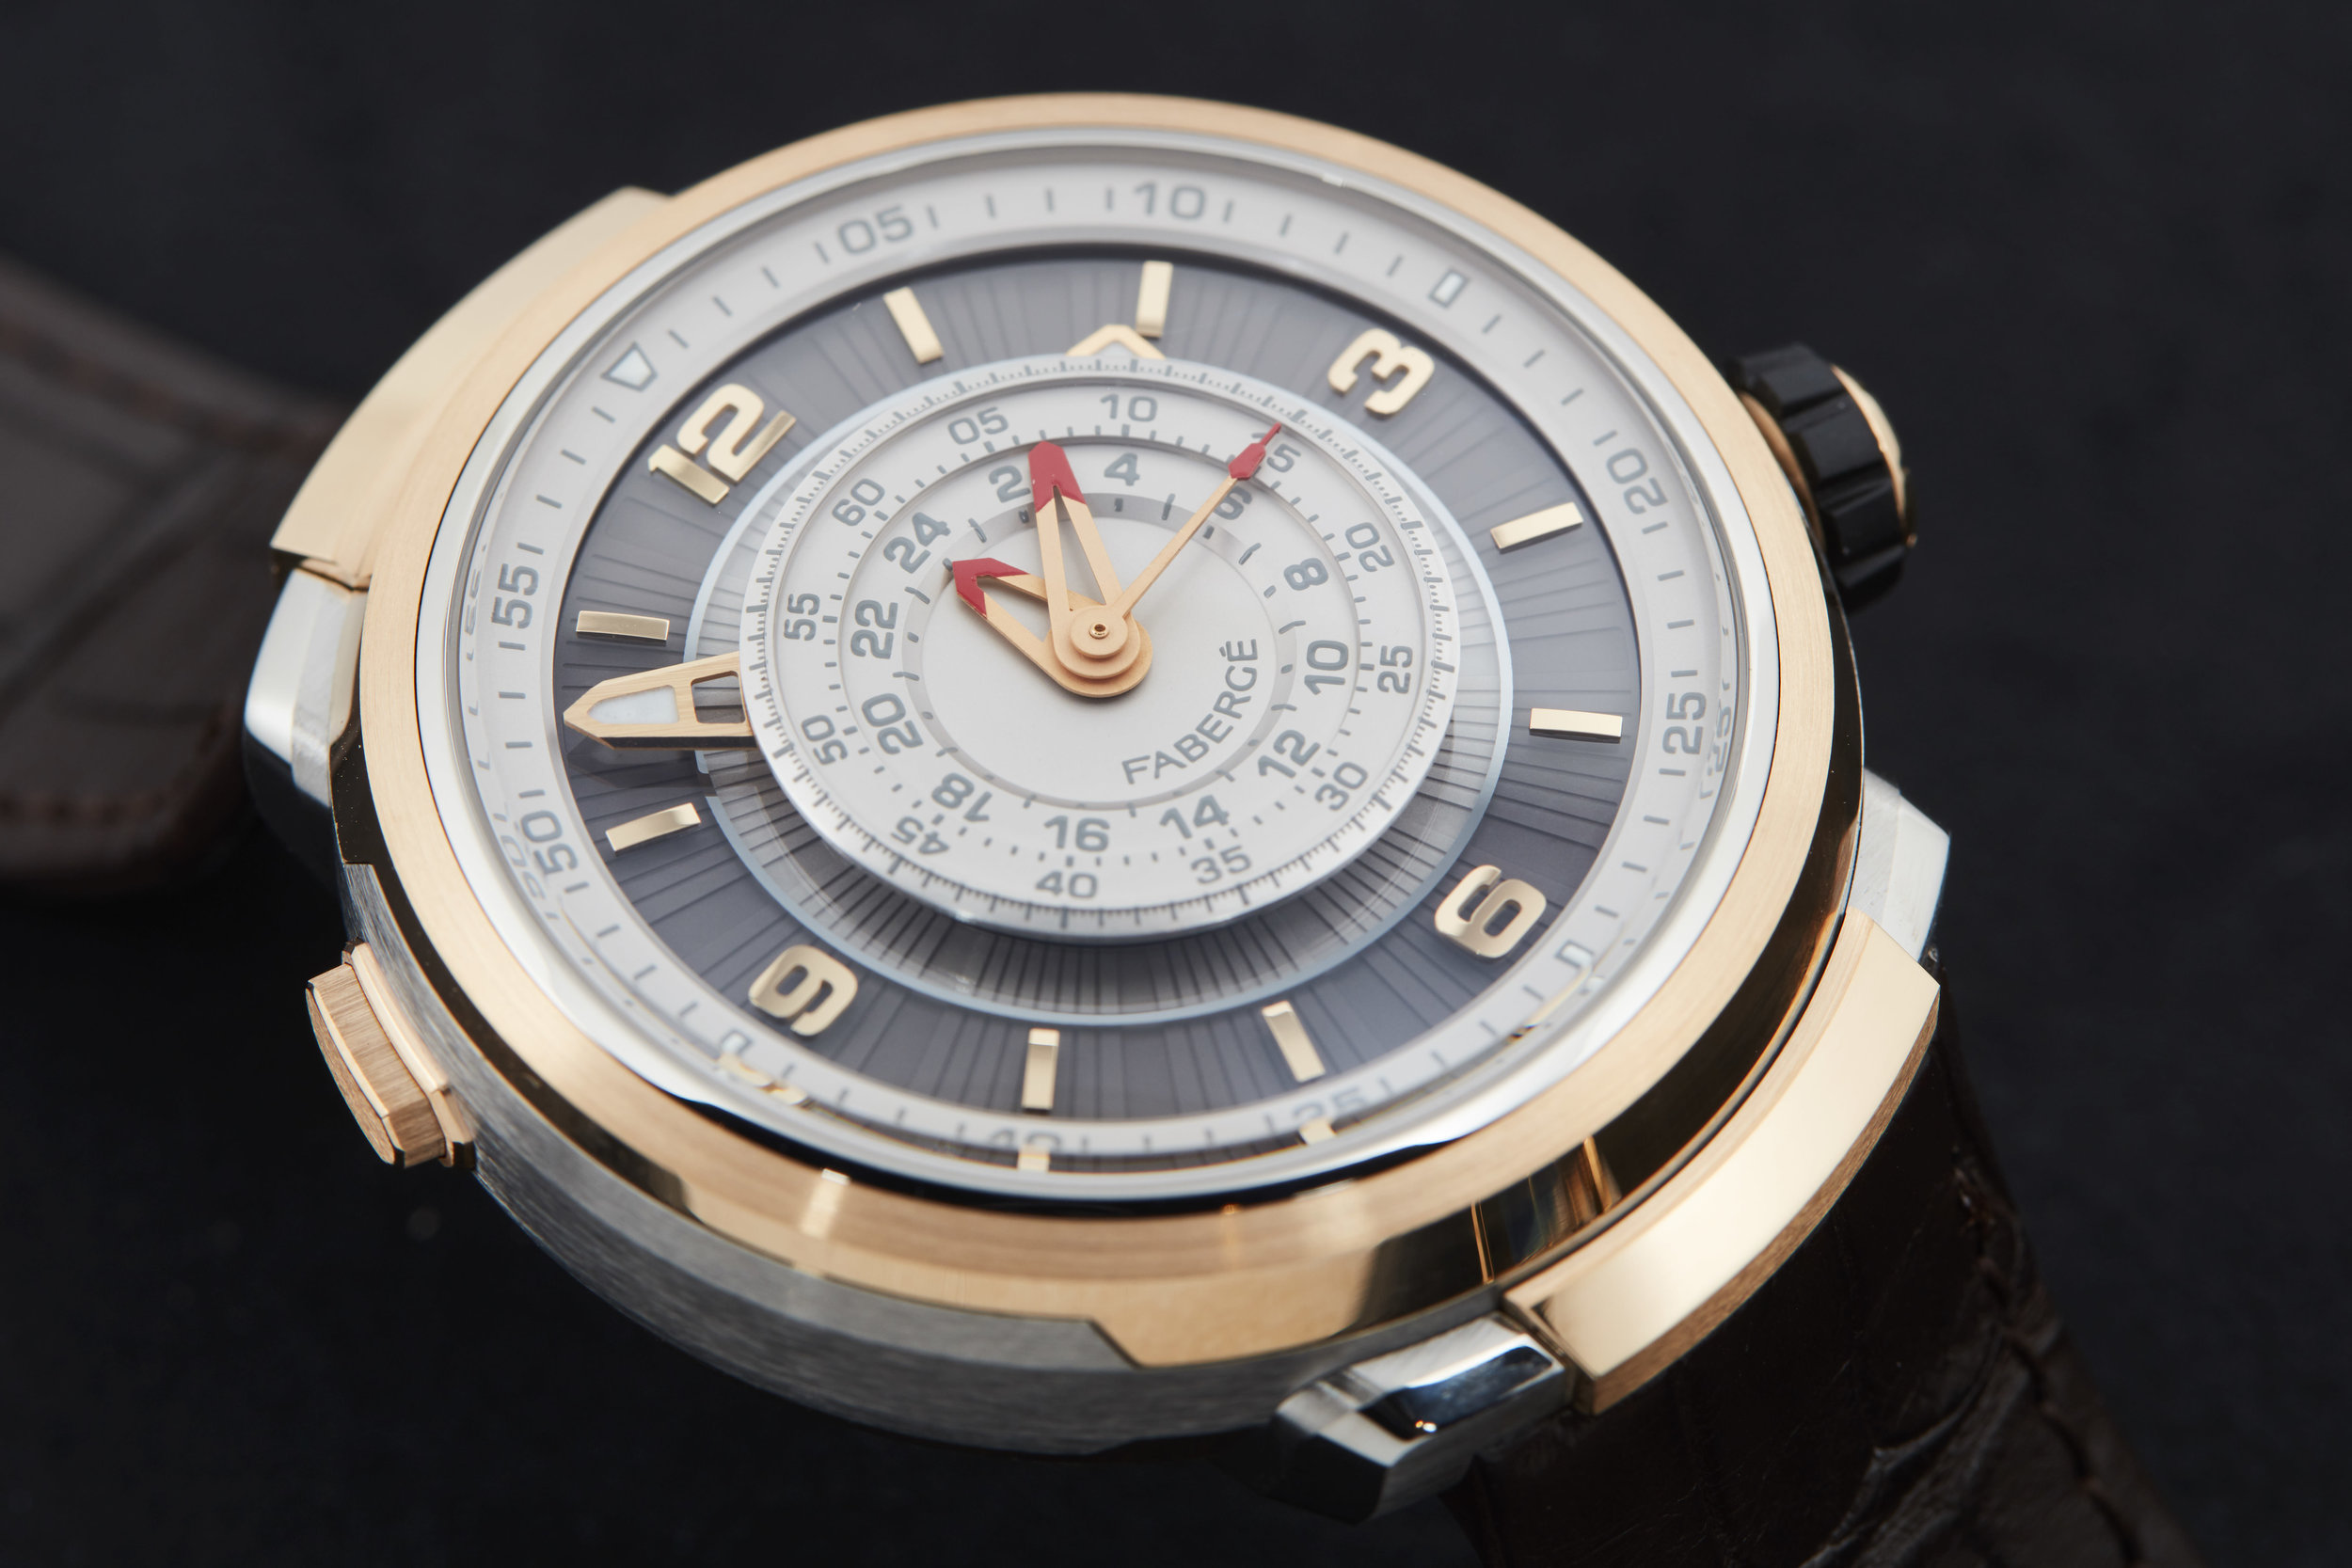 Fabergé Visionnaire Chronograph in rose gold